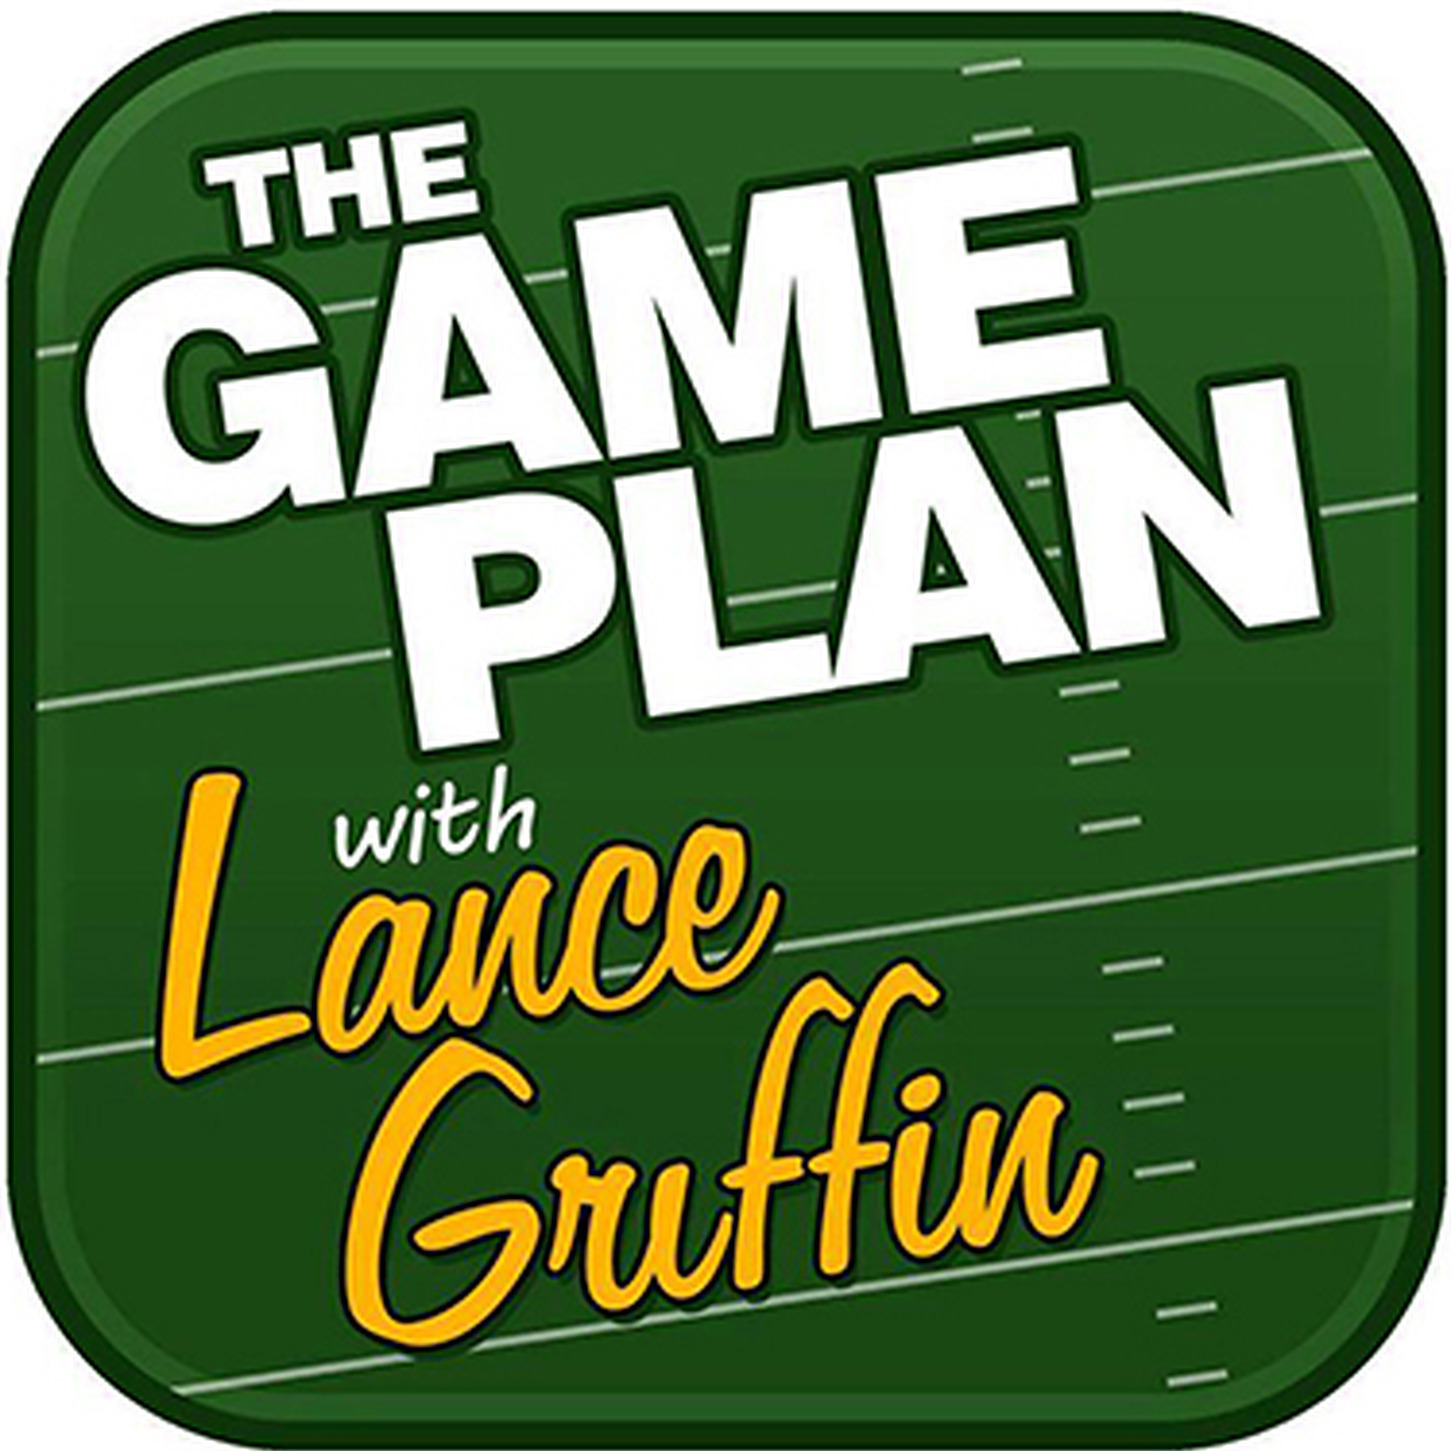 THURSDAY: The Game Plan